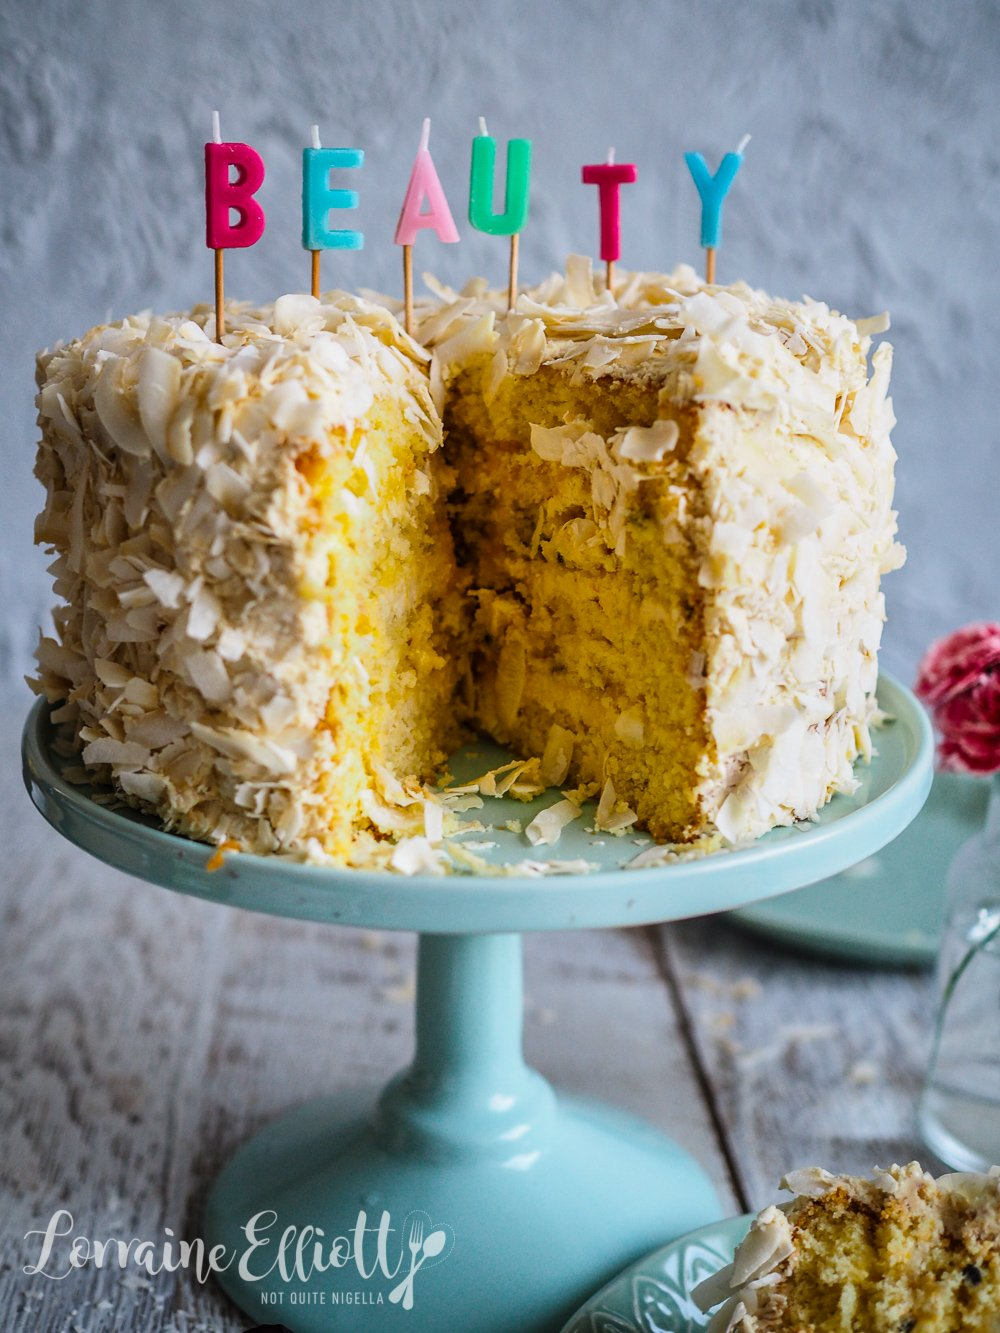 Passion Fruit & Coconut Layer Cake